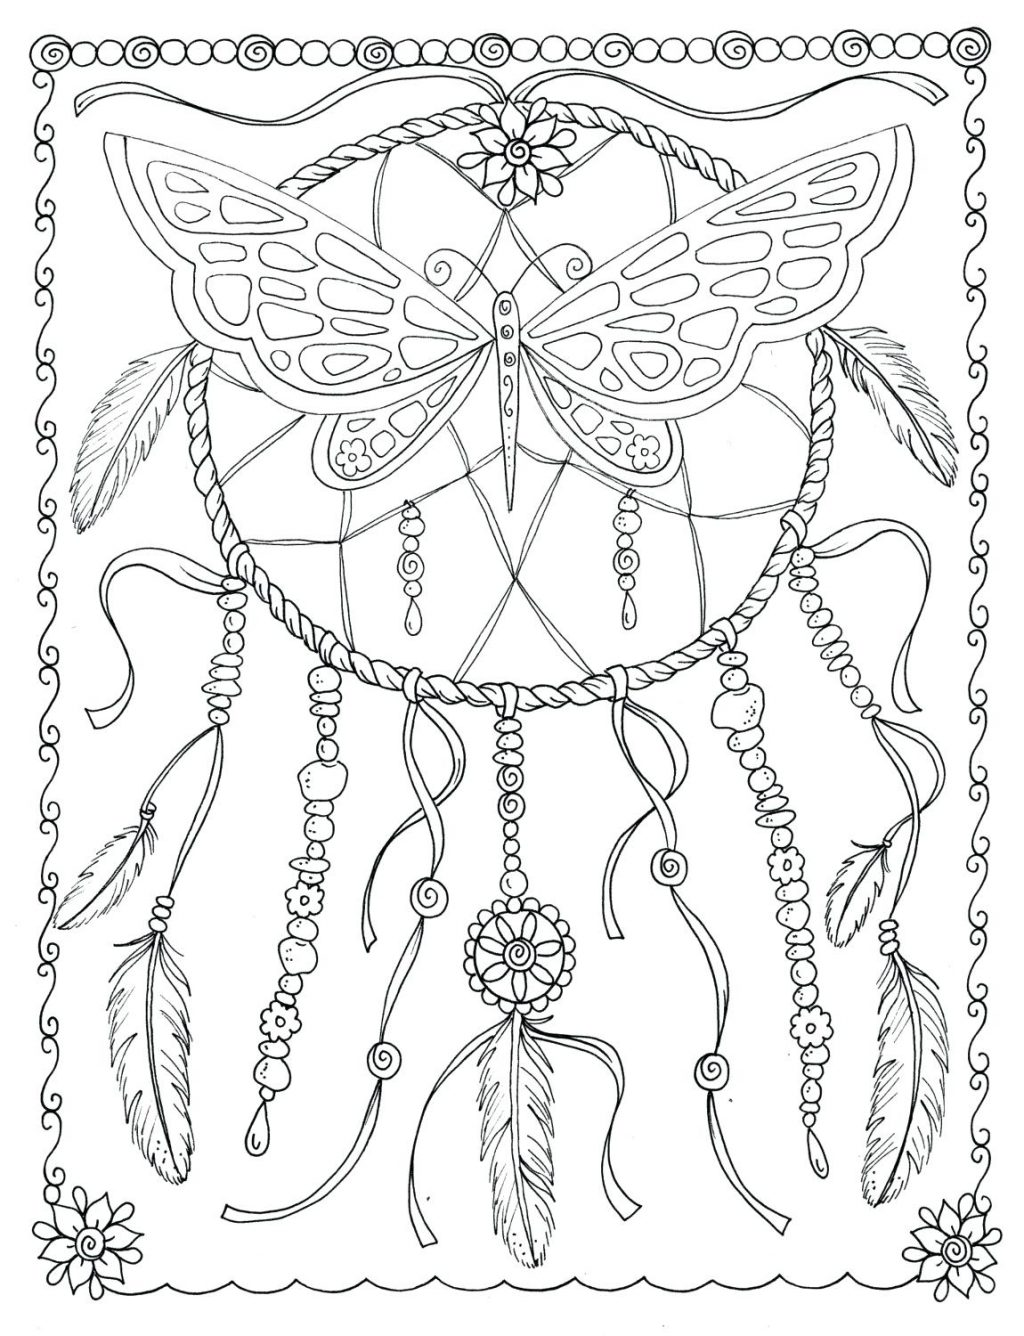 1024x1336 Coloring Page Dreamcatcher Coloring Pages Zoom Free Printable